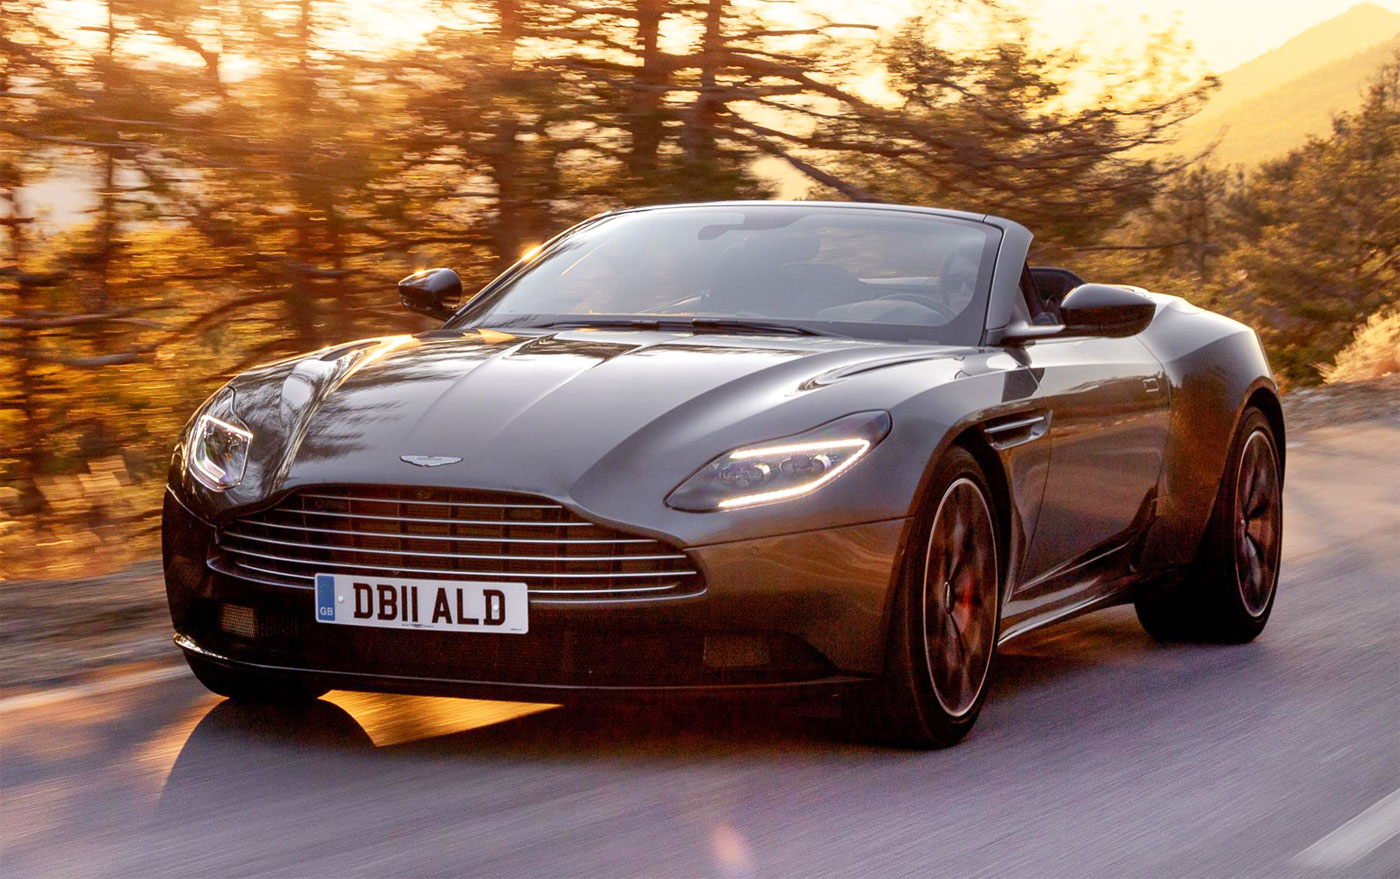 The Future's Looking Bright For Aston Martin Thanks to the DB11